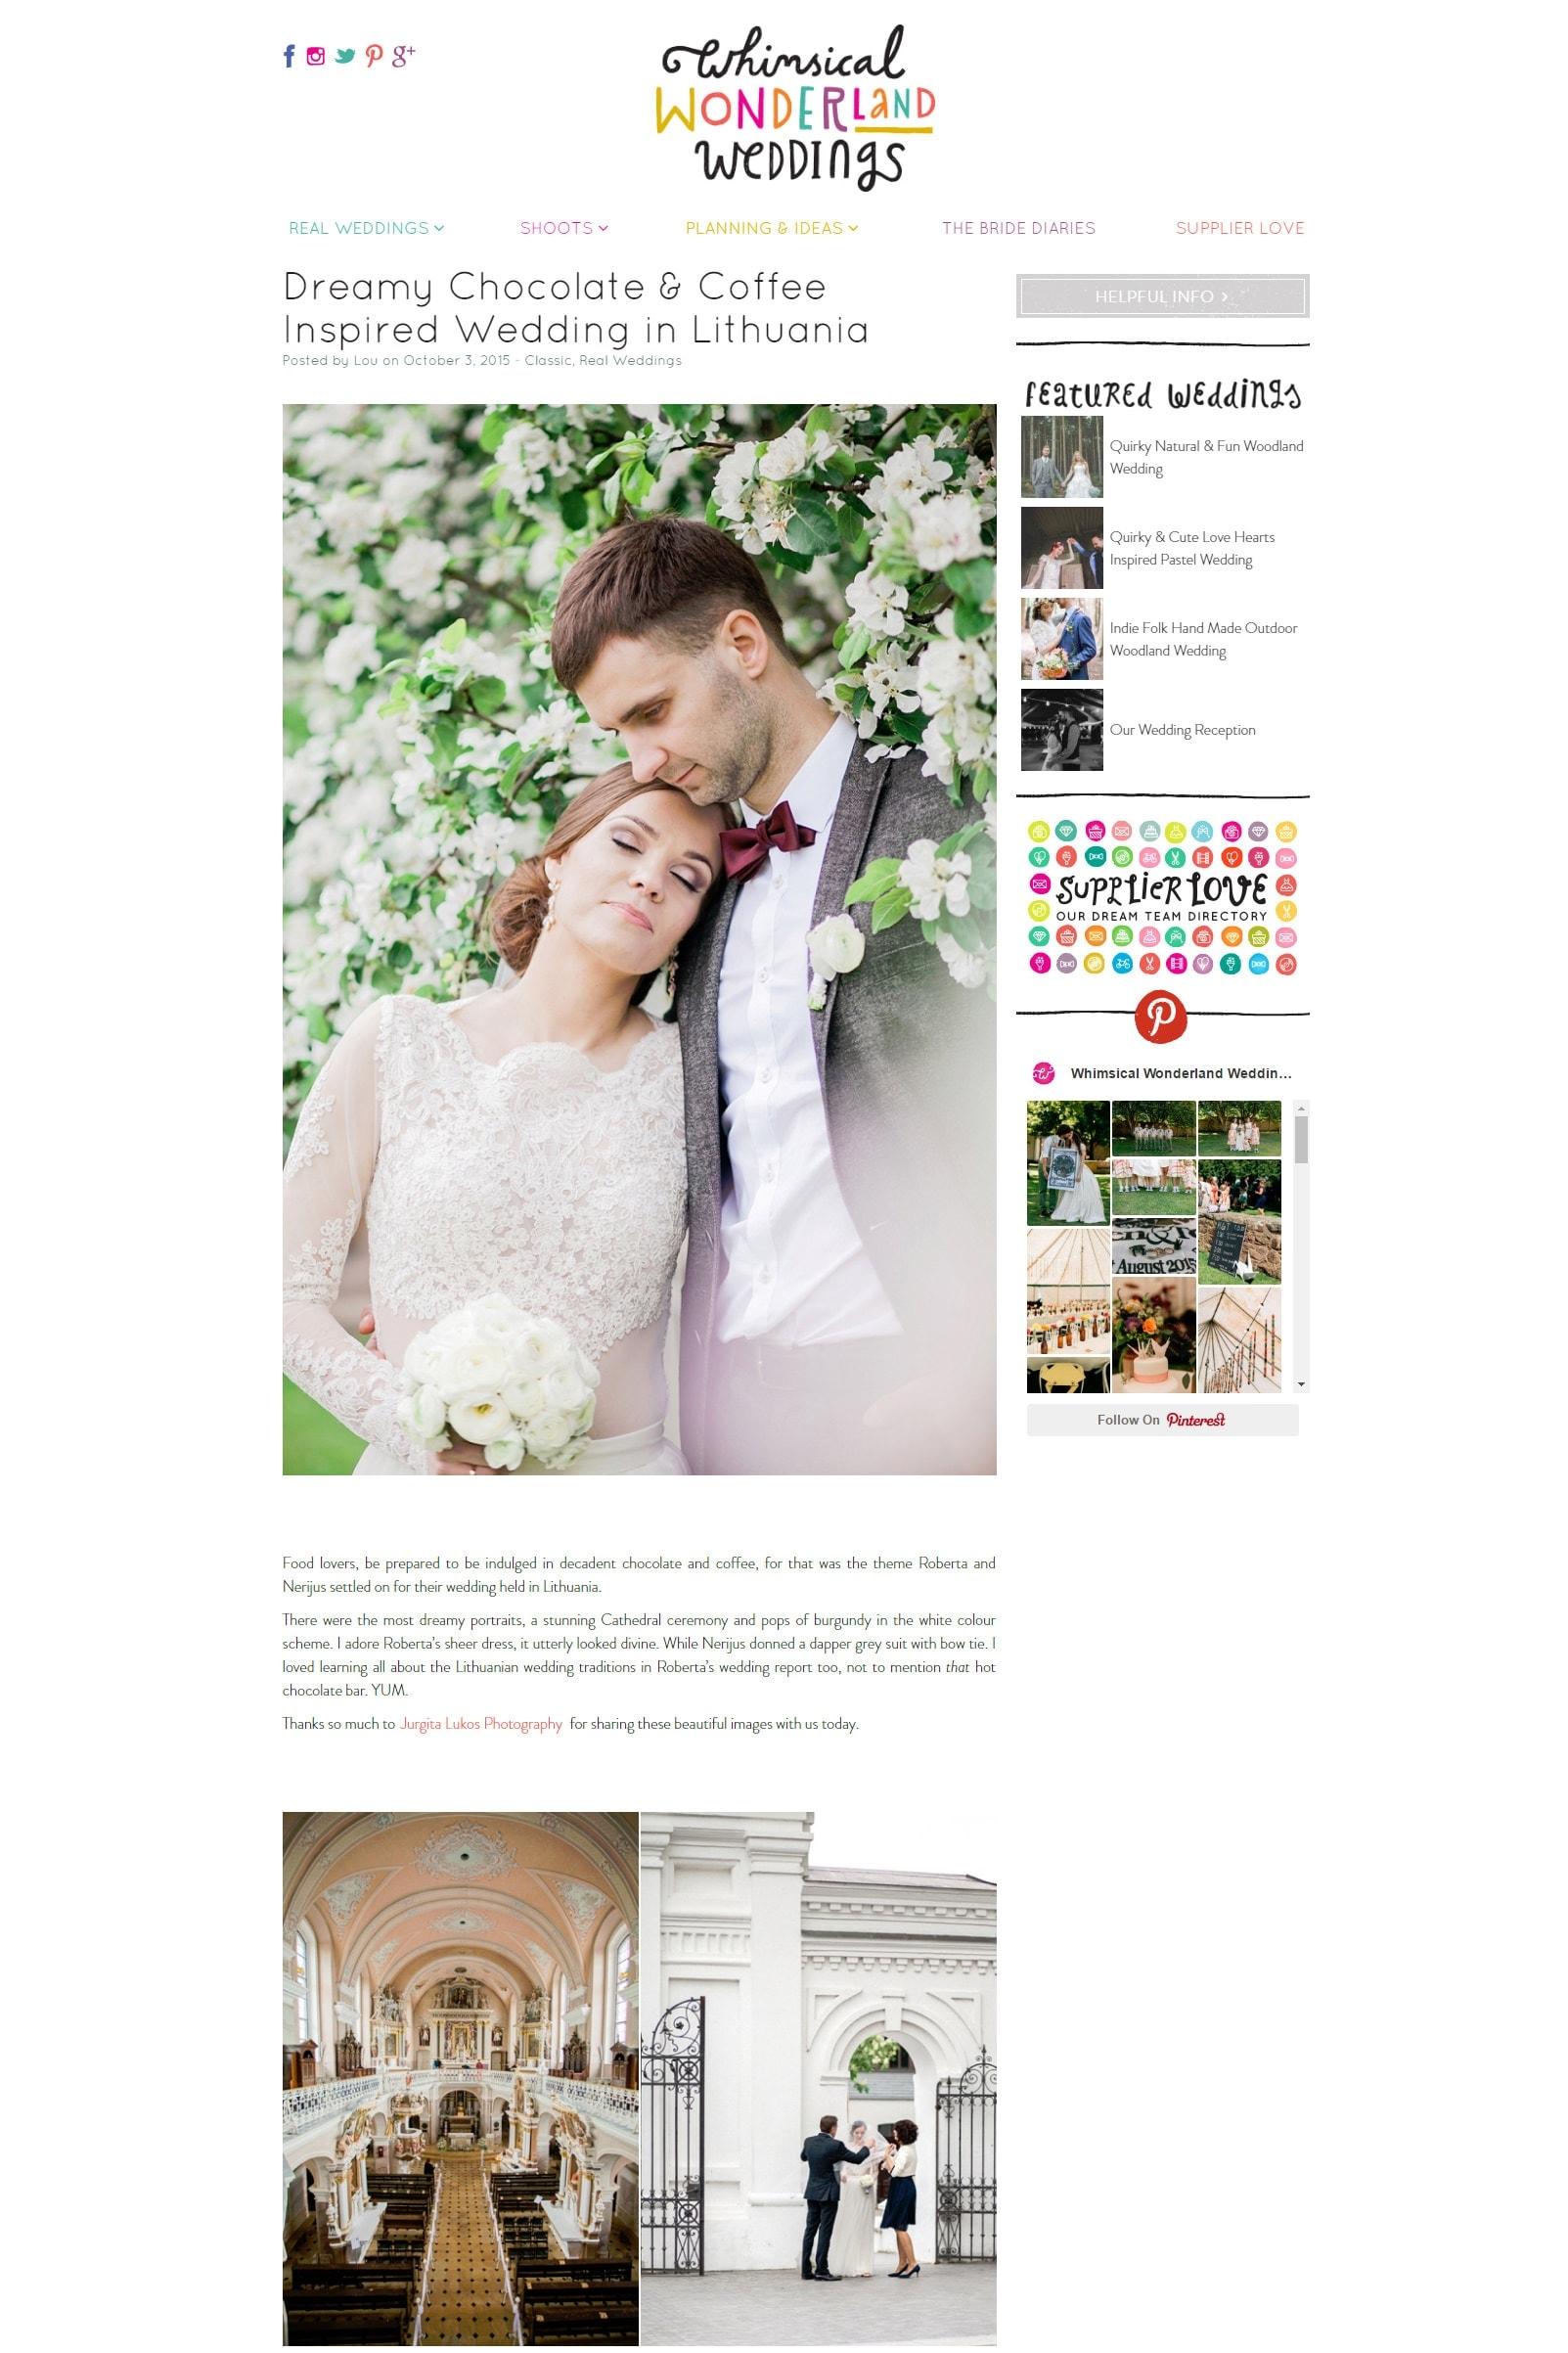 Dreamy Chocolate   Coffee Inspired Wedding in Lithuania   Whimsical Wonderland Weddings